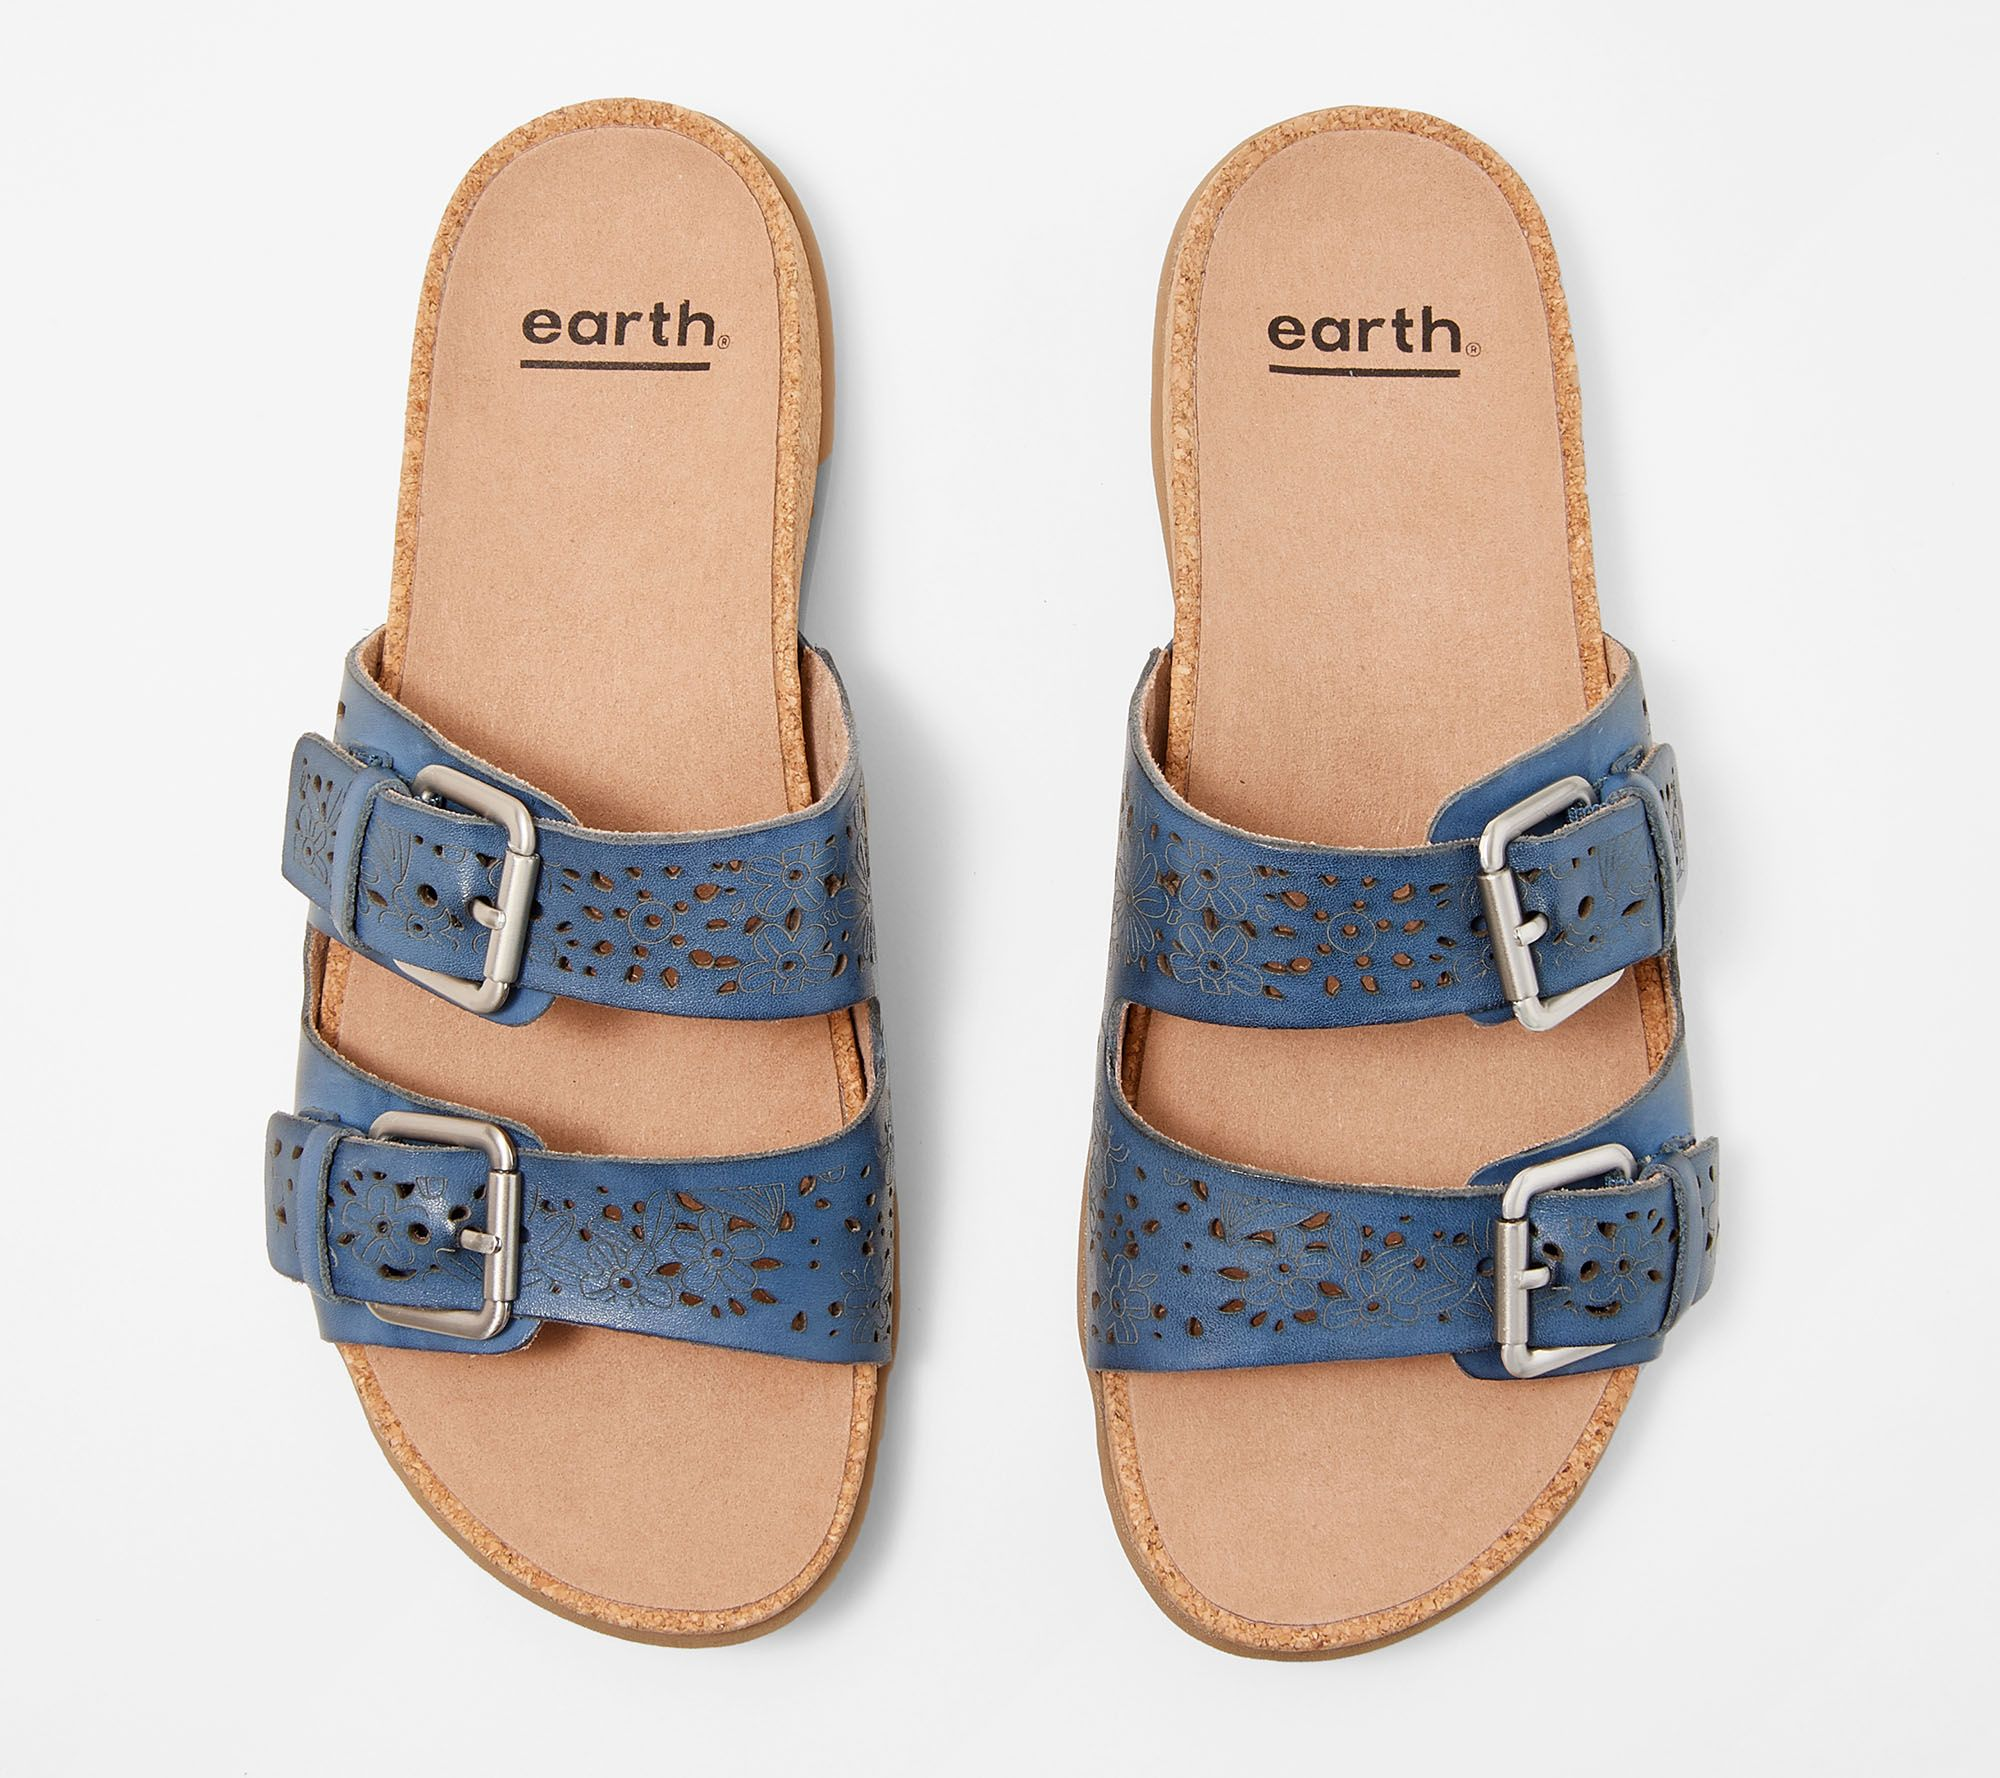 7fef4827f Earth Perforated Leather Slide Sandals- Sand Antigua - Page 1 — QVC.com